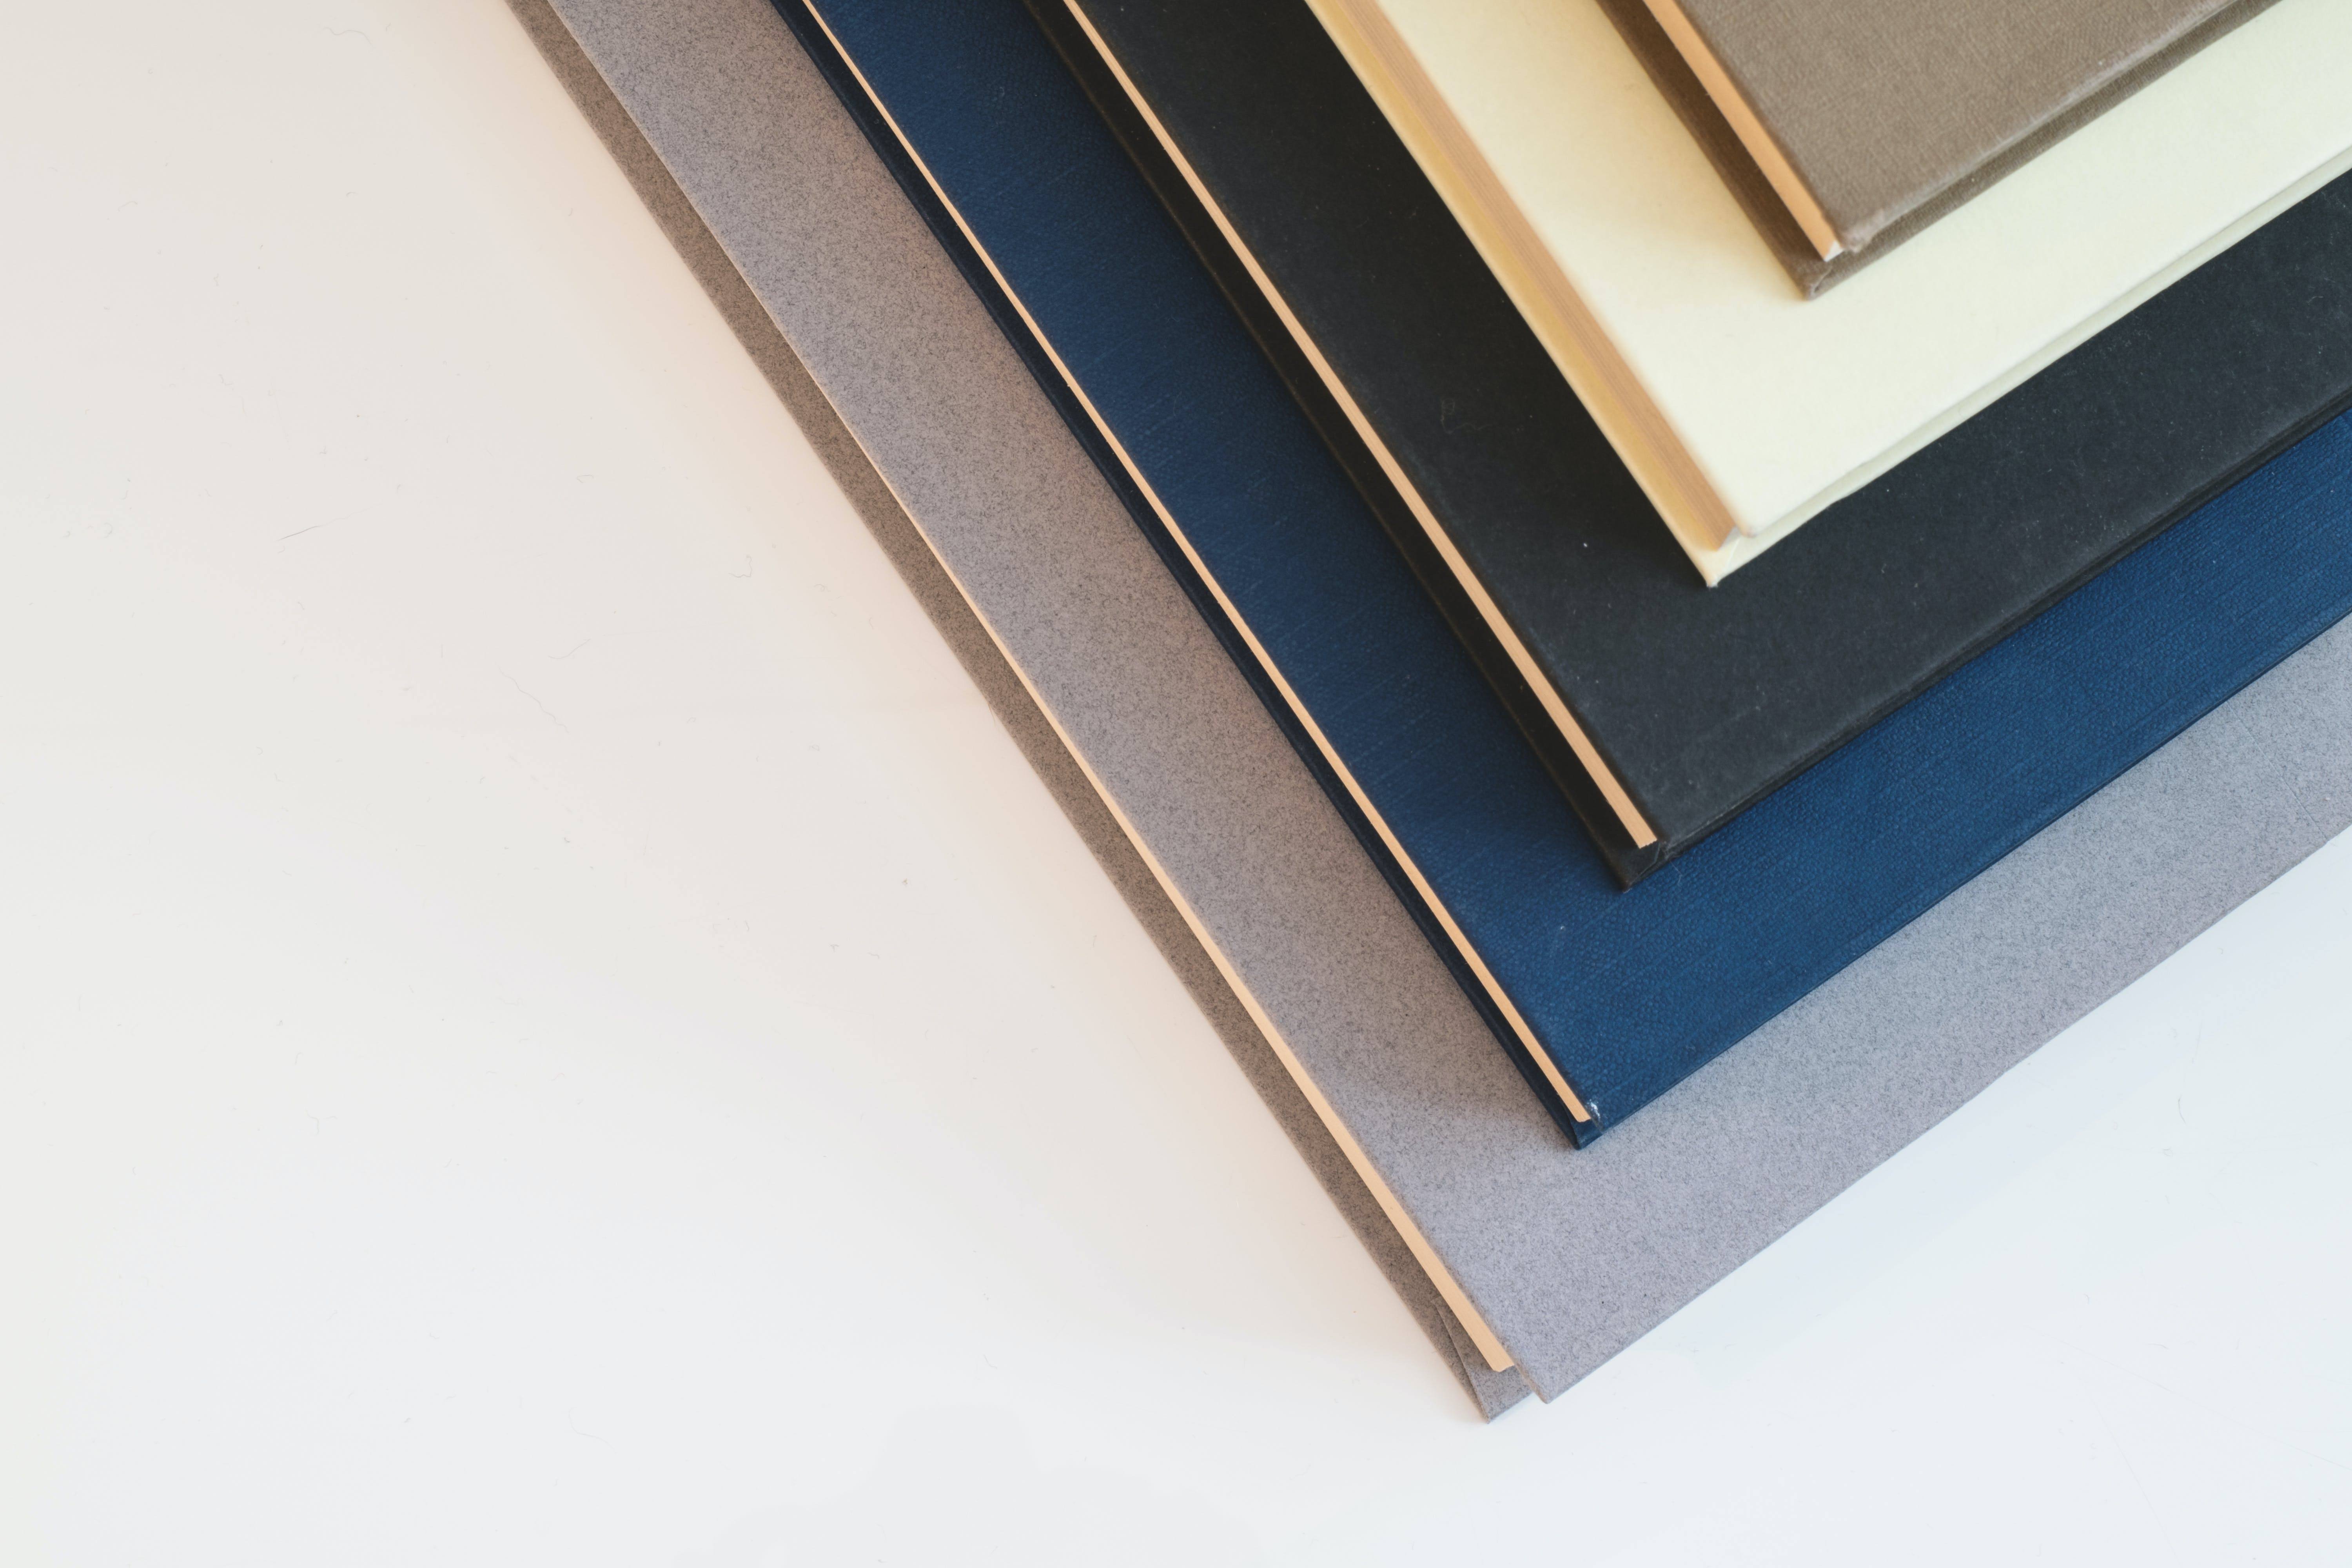 Assorted-color Books